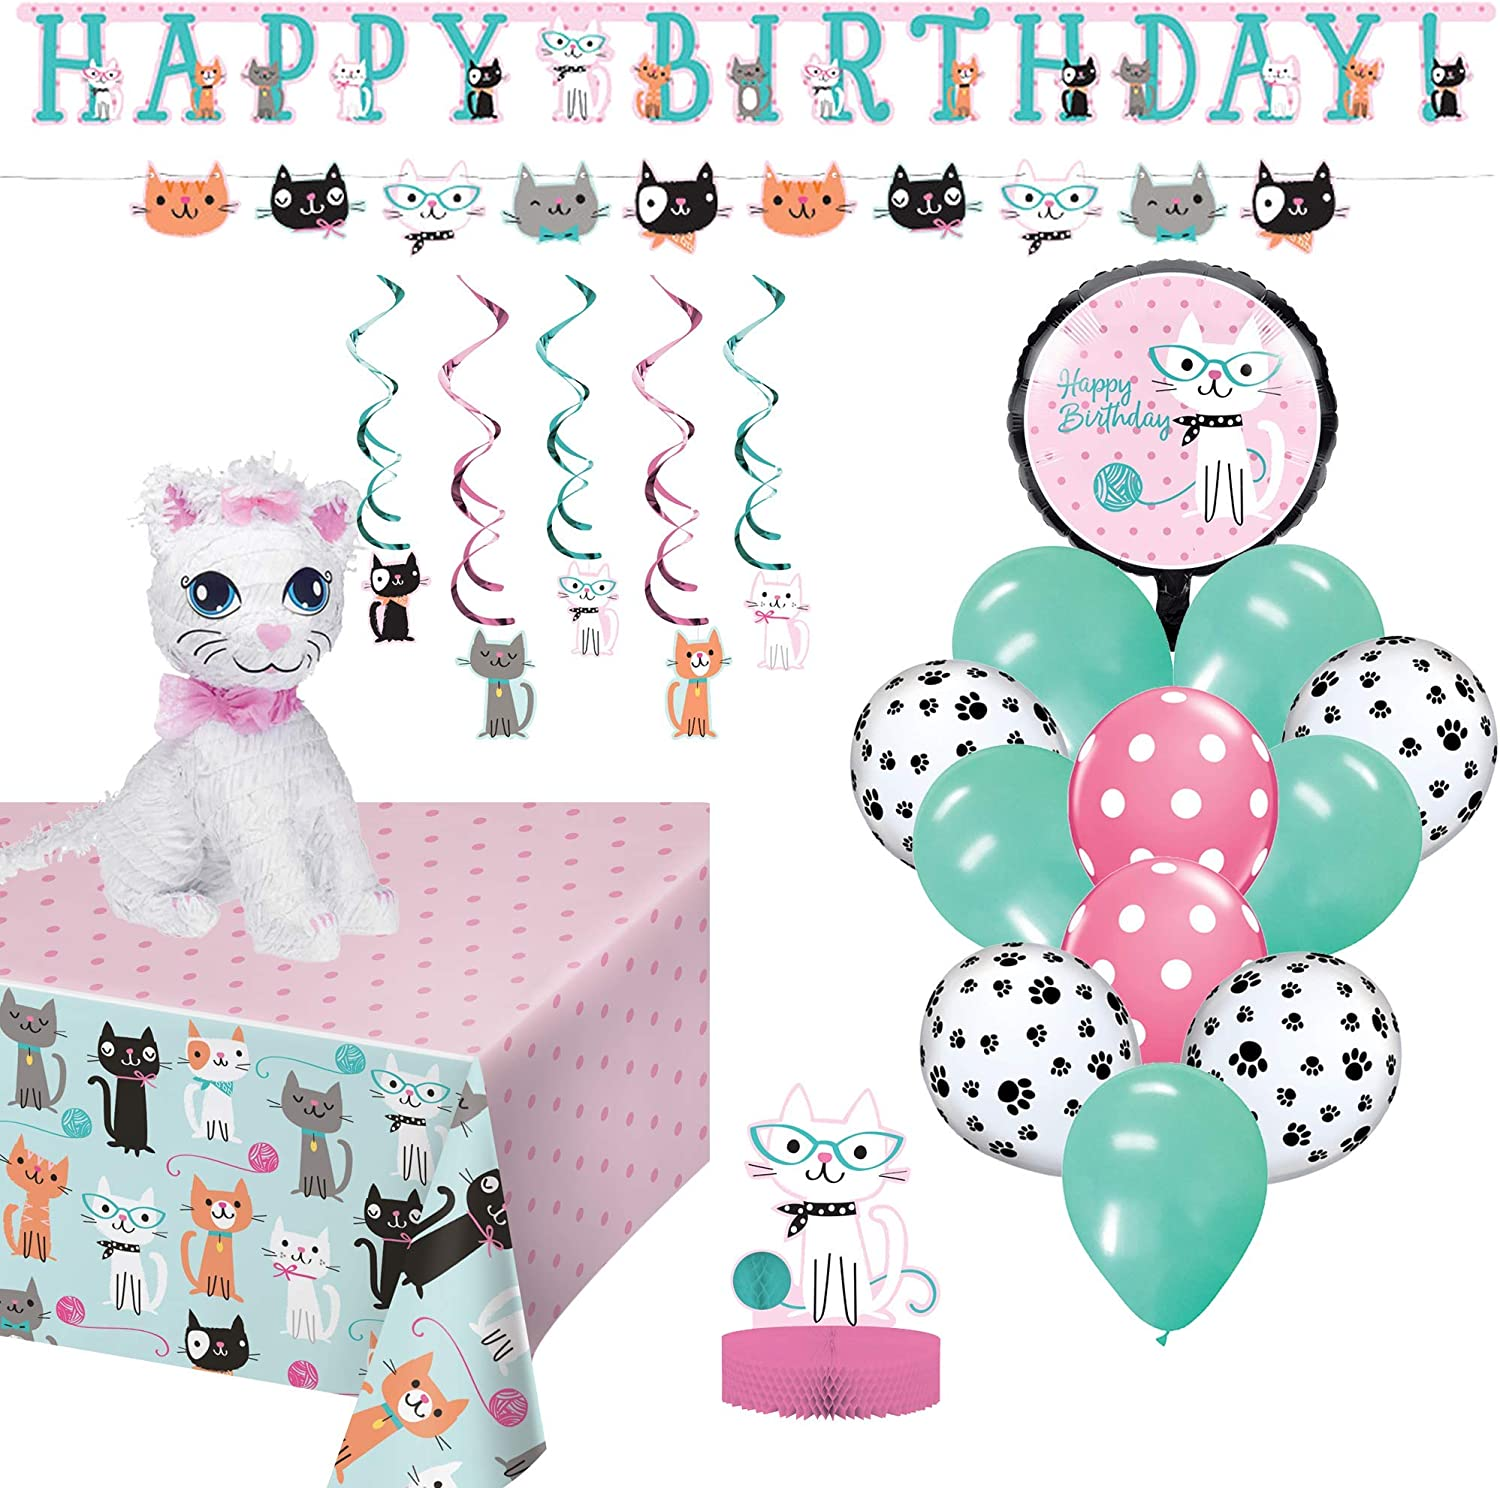 Birthday Party Set    Ya Otta Cat Pinata bundled with Cat Party Supplies and an eBook with Kids Birthday Party Games